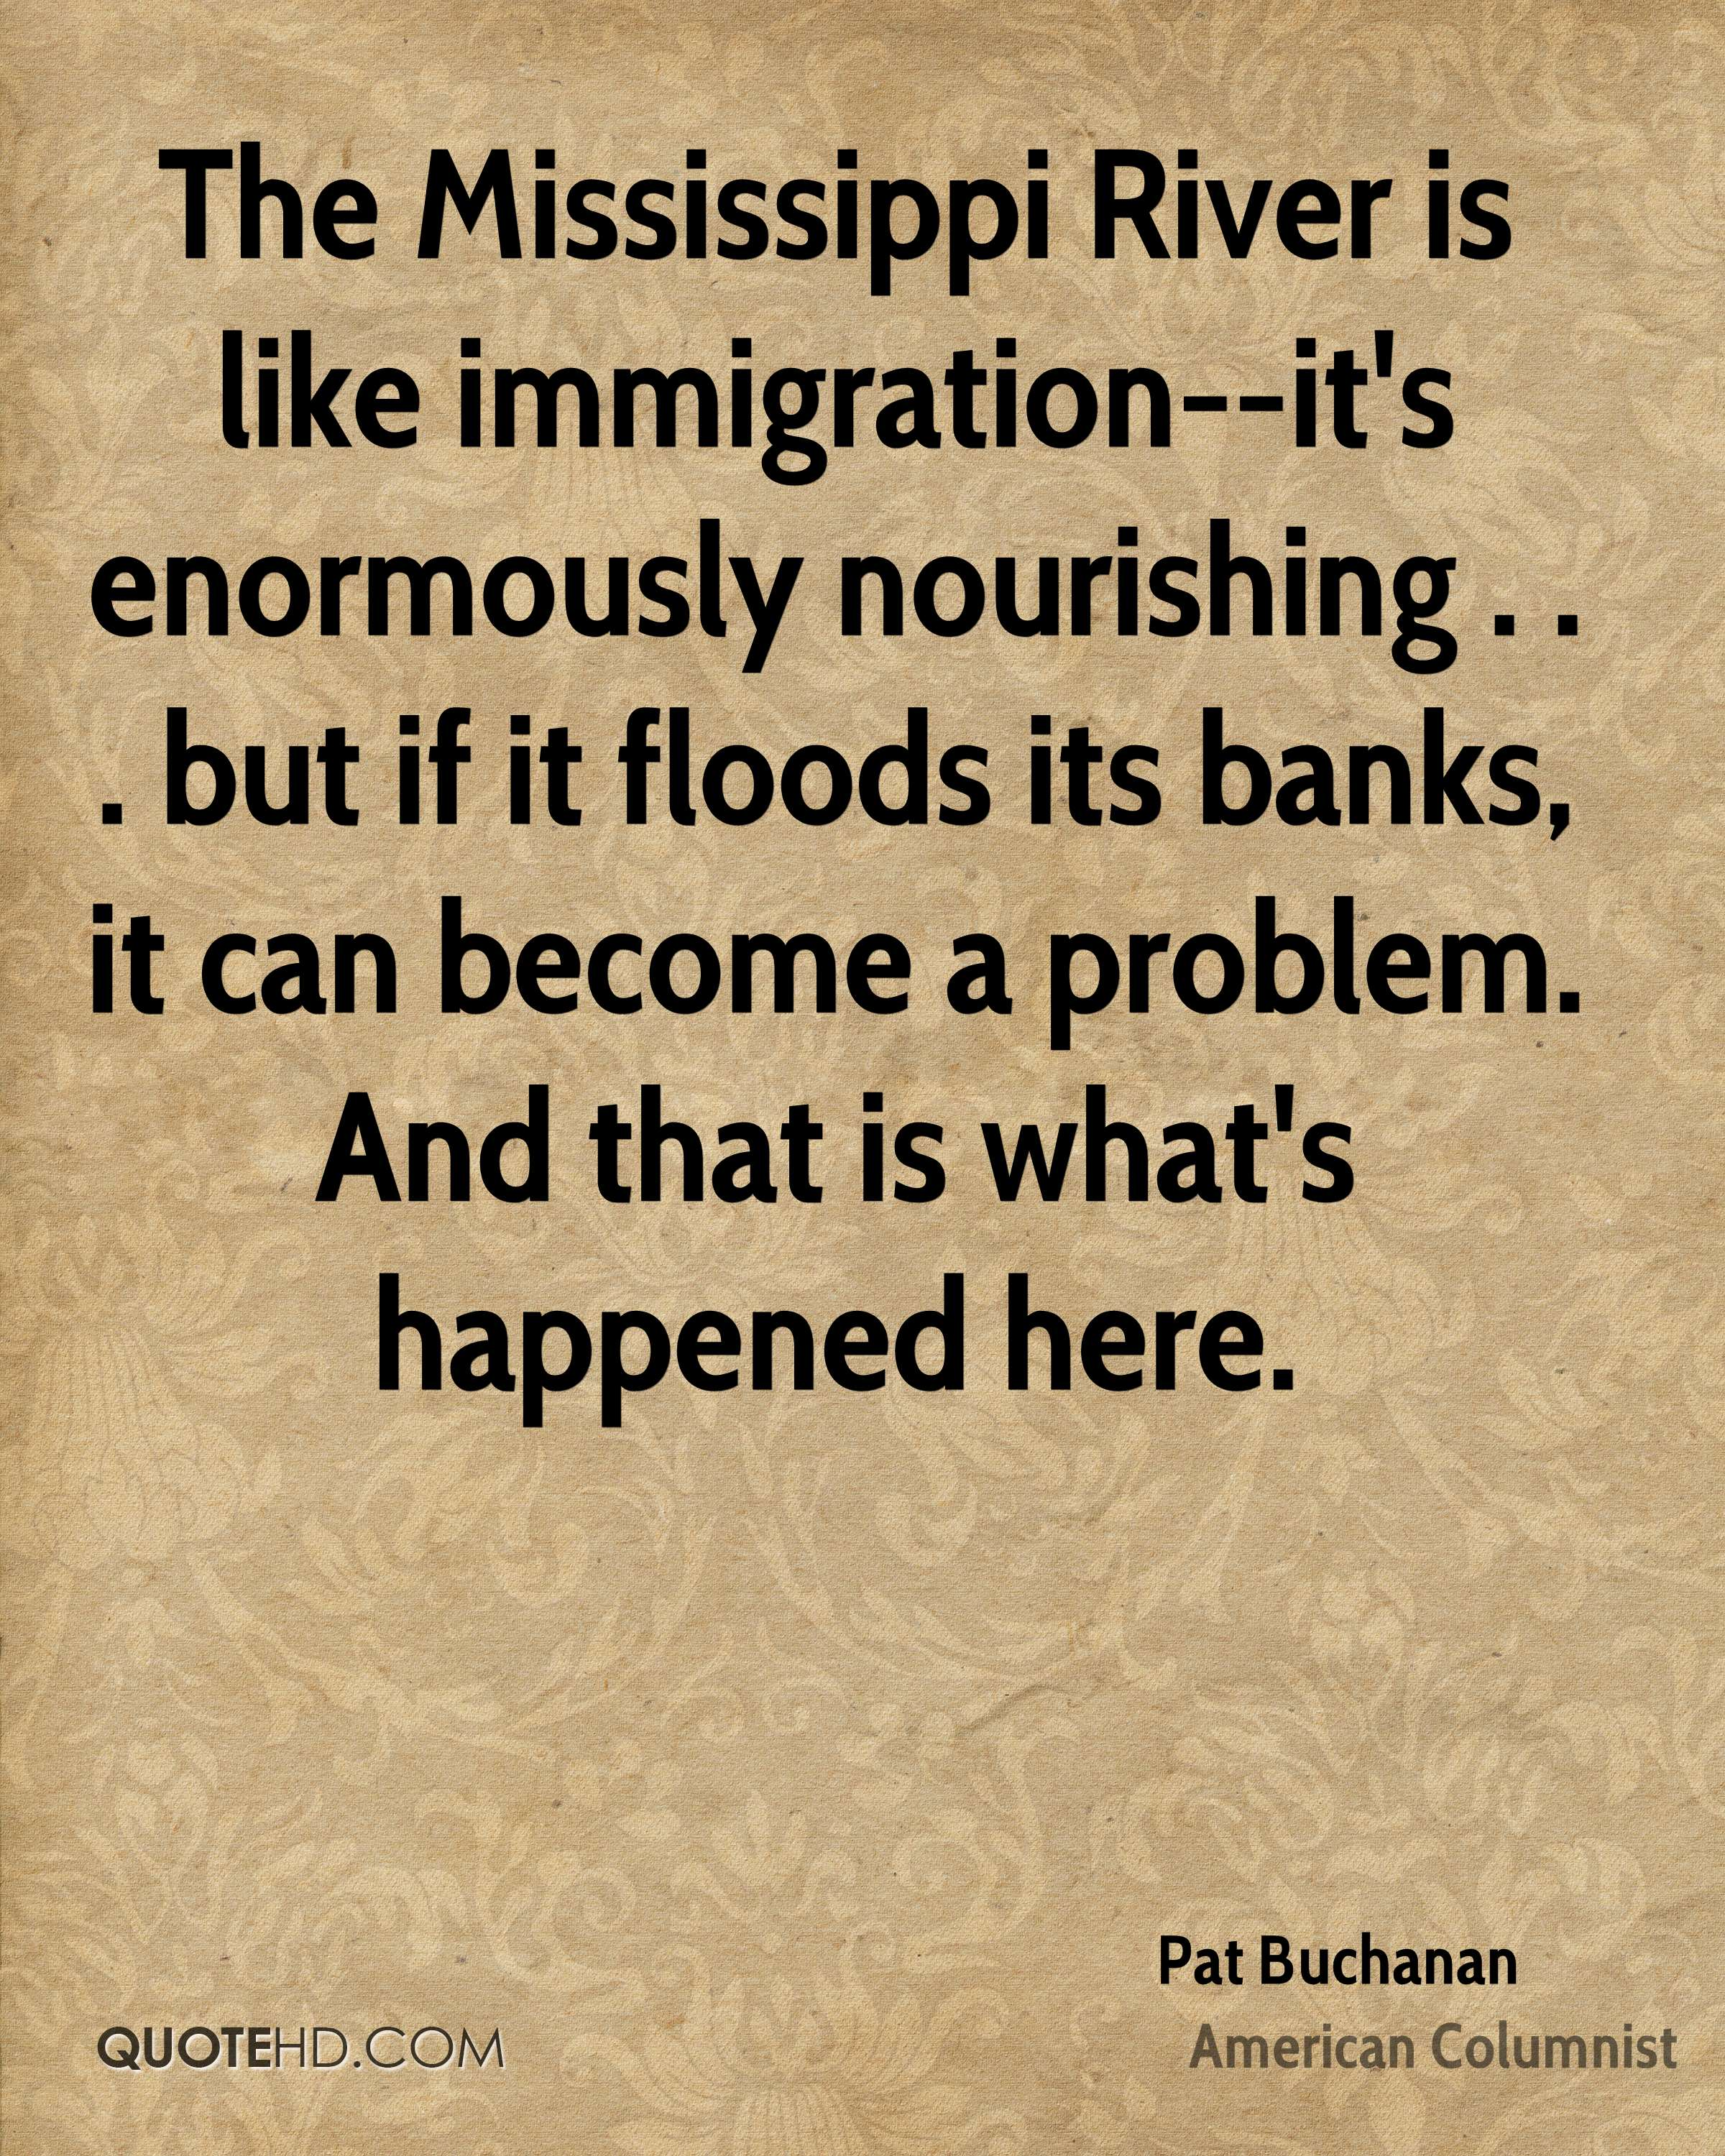 The Mississippi River is like immigration--it's enormously nourishing . . . but if it floods its banks, it can become a problem. And that is what's happened here.